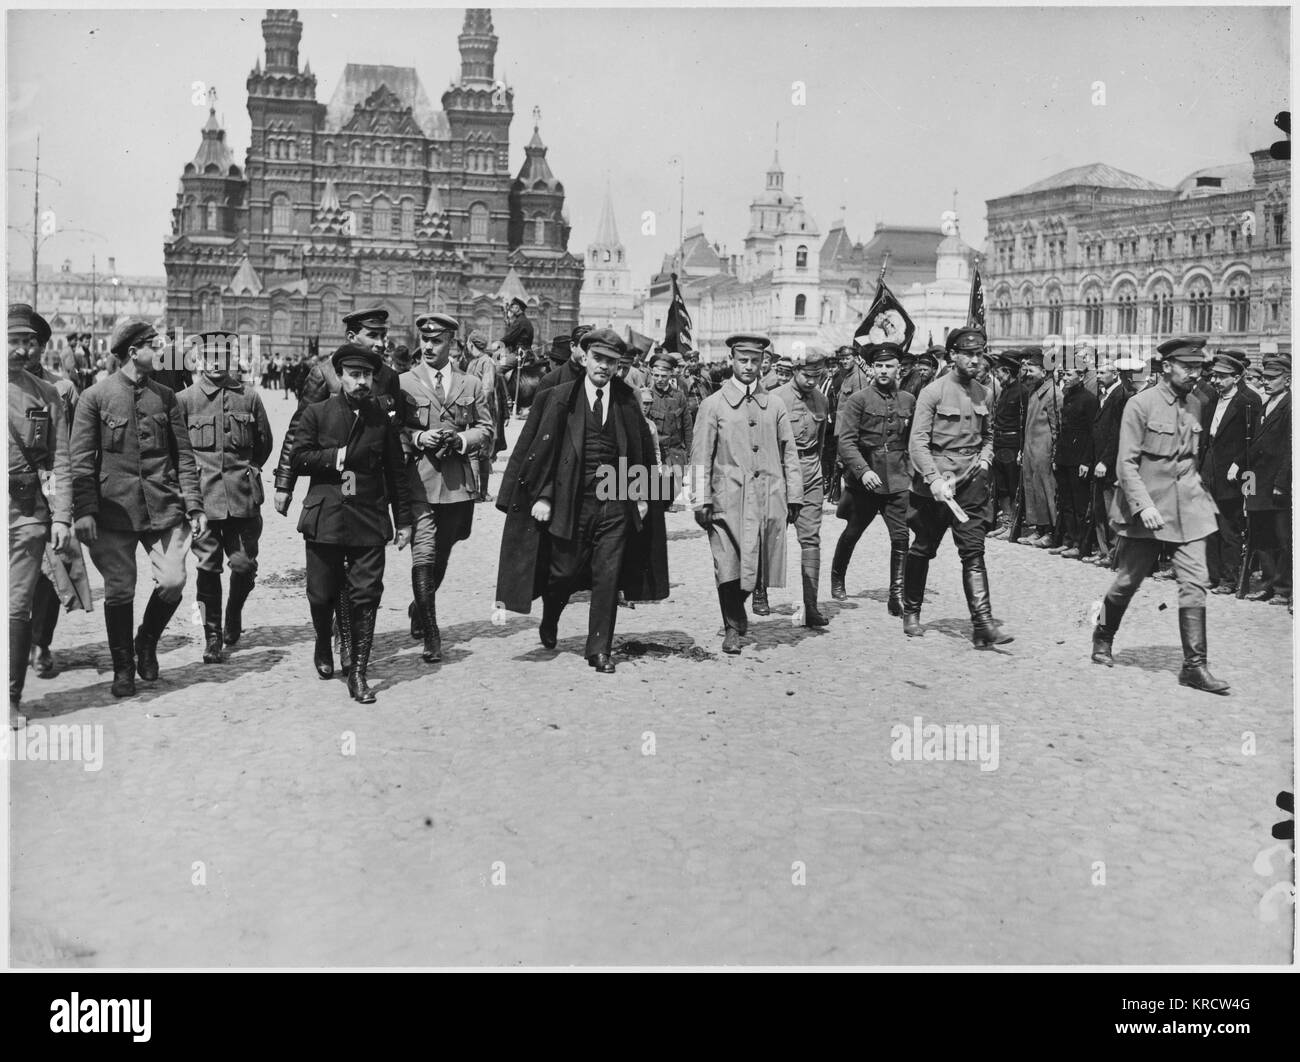 Vladimir Lenin in Red Square, Moscow. Date: 1918 Stock Photo